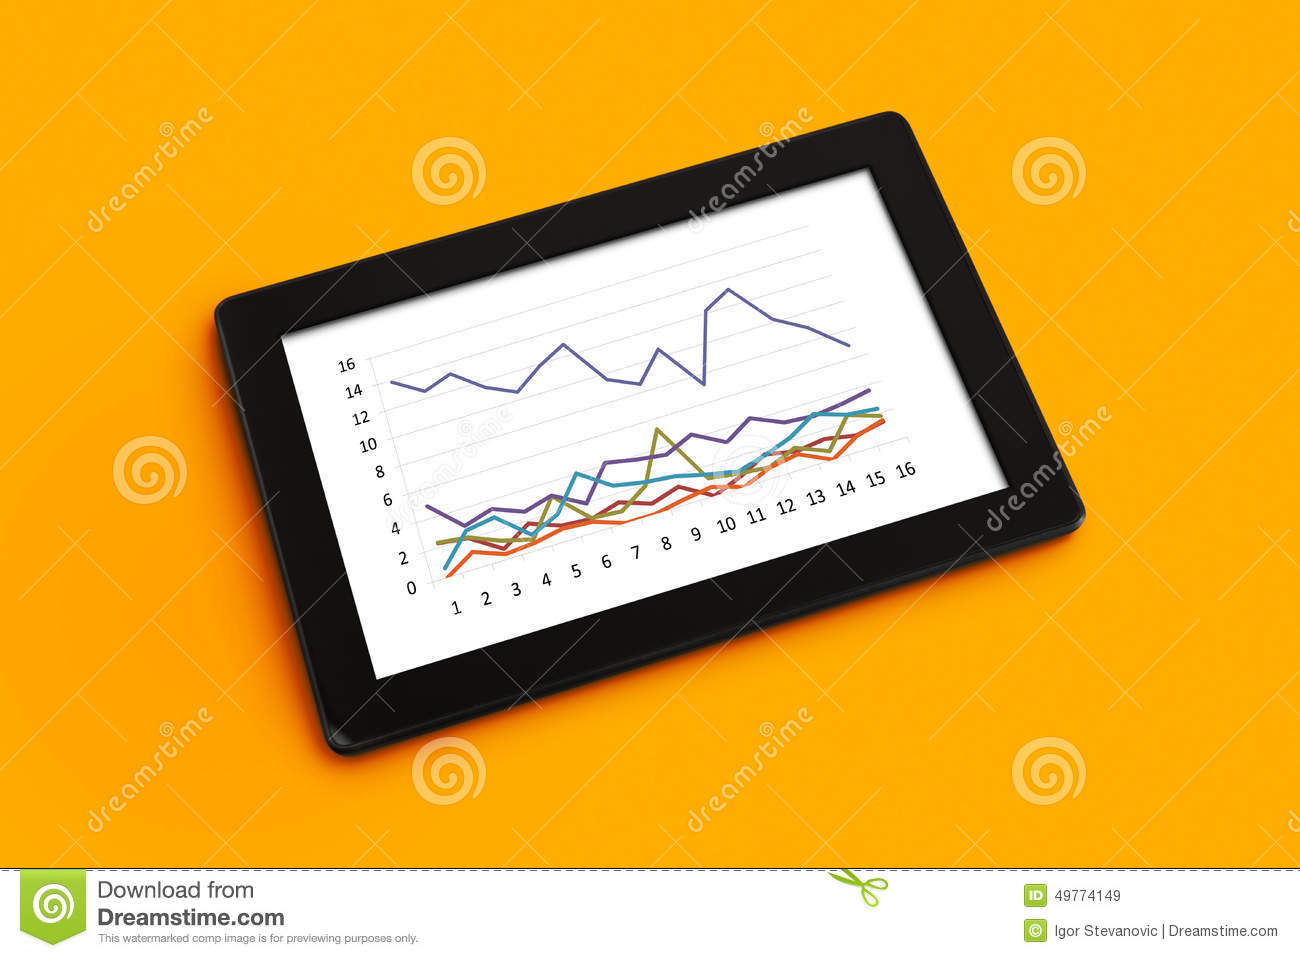 micro analysis tablet industry It can also be argued that the increase in sales could be driven by back- washbowl promotions because the tablet pc market is reaching its maturity  stage.